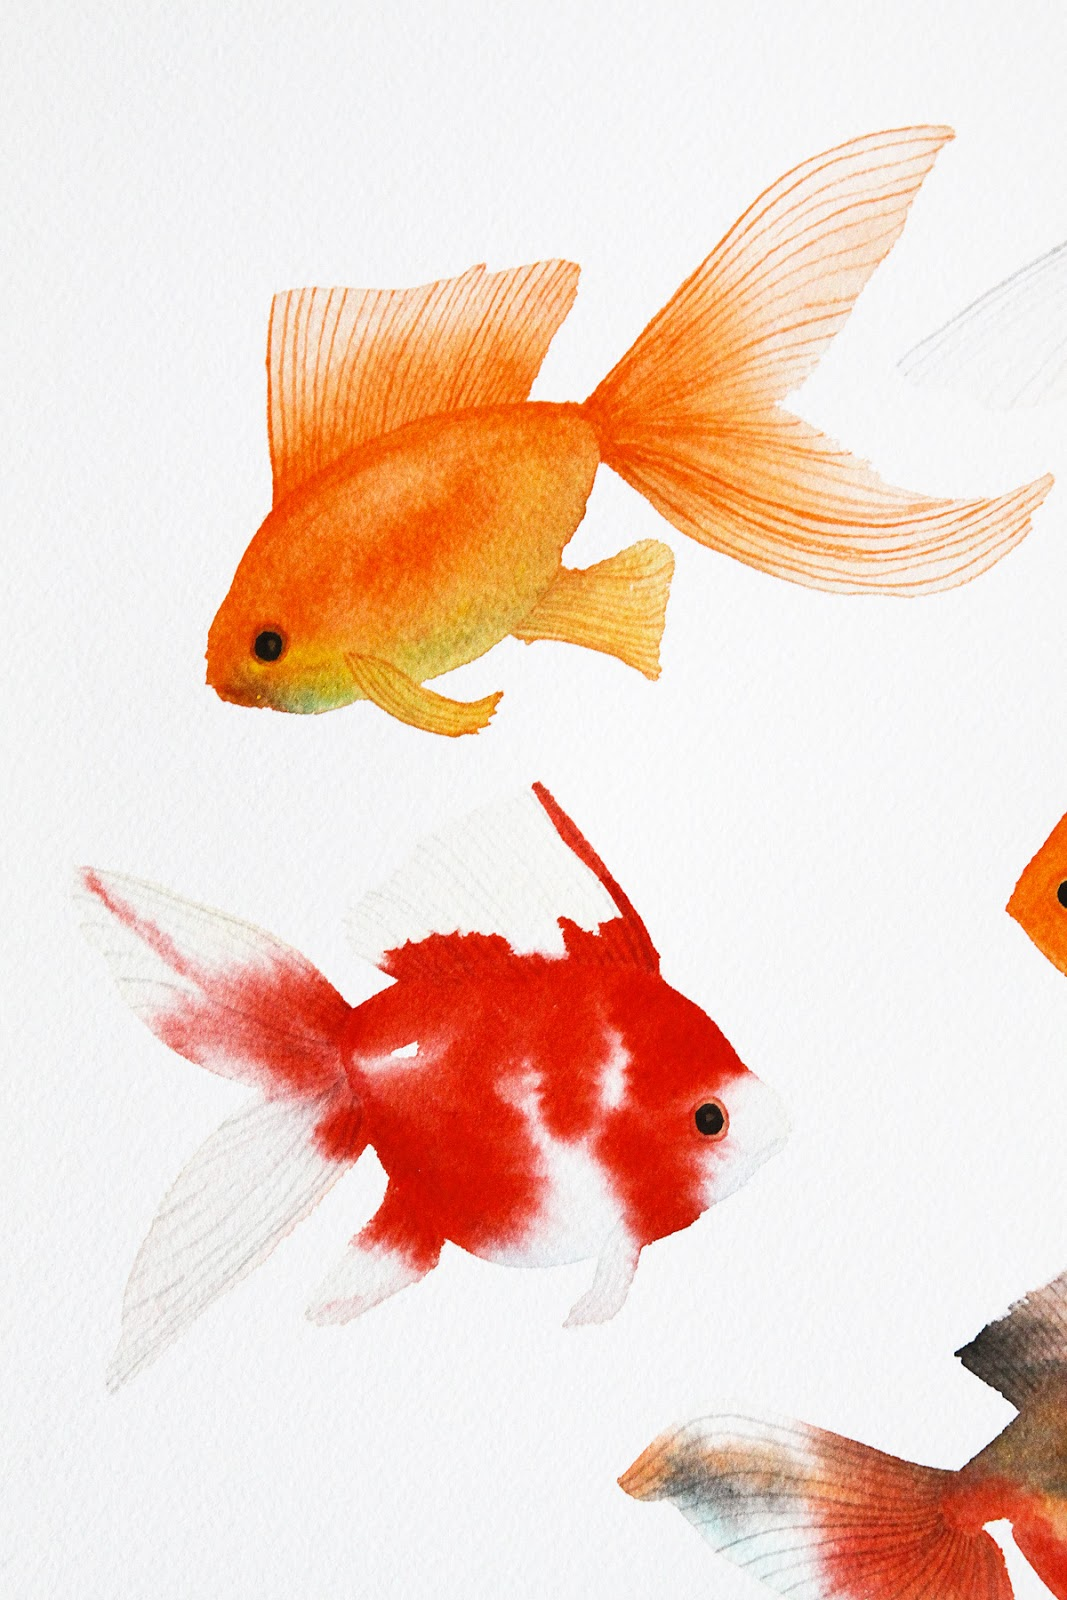 Obsessed With: Goldfish!